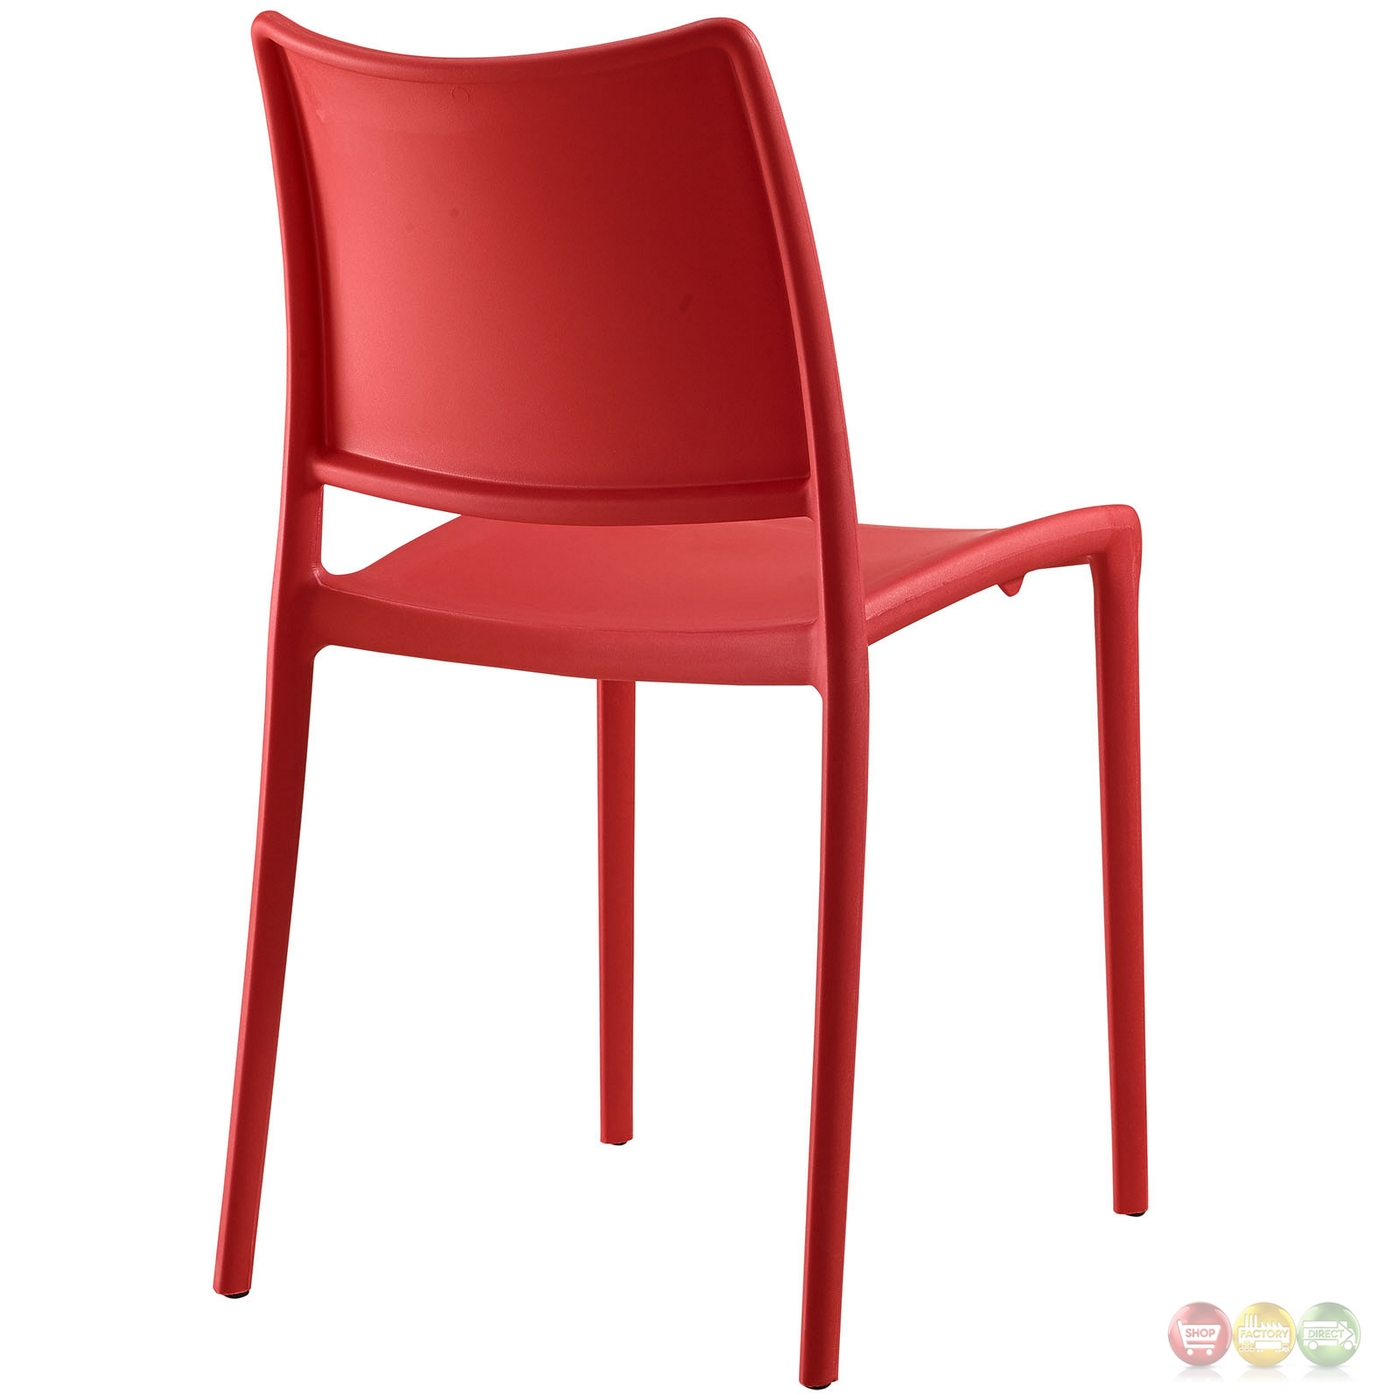 hipster contemporary stackable plastic dining side chair red. Black Bedroom Furniture Sets. Home Design Ideas